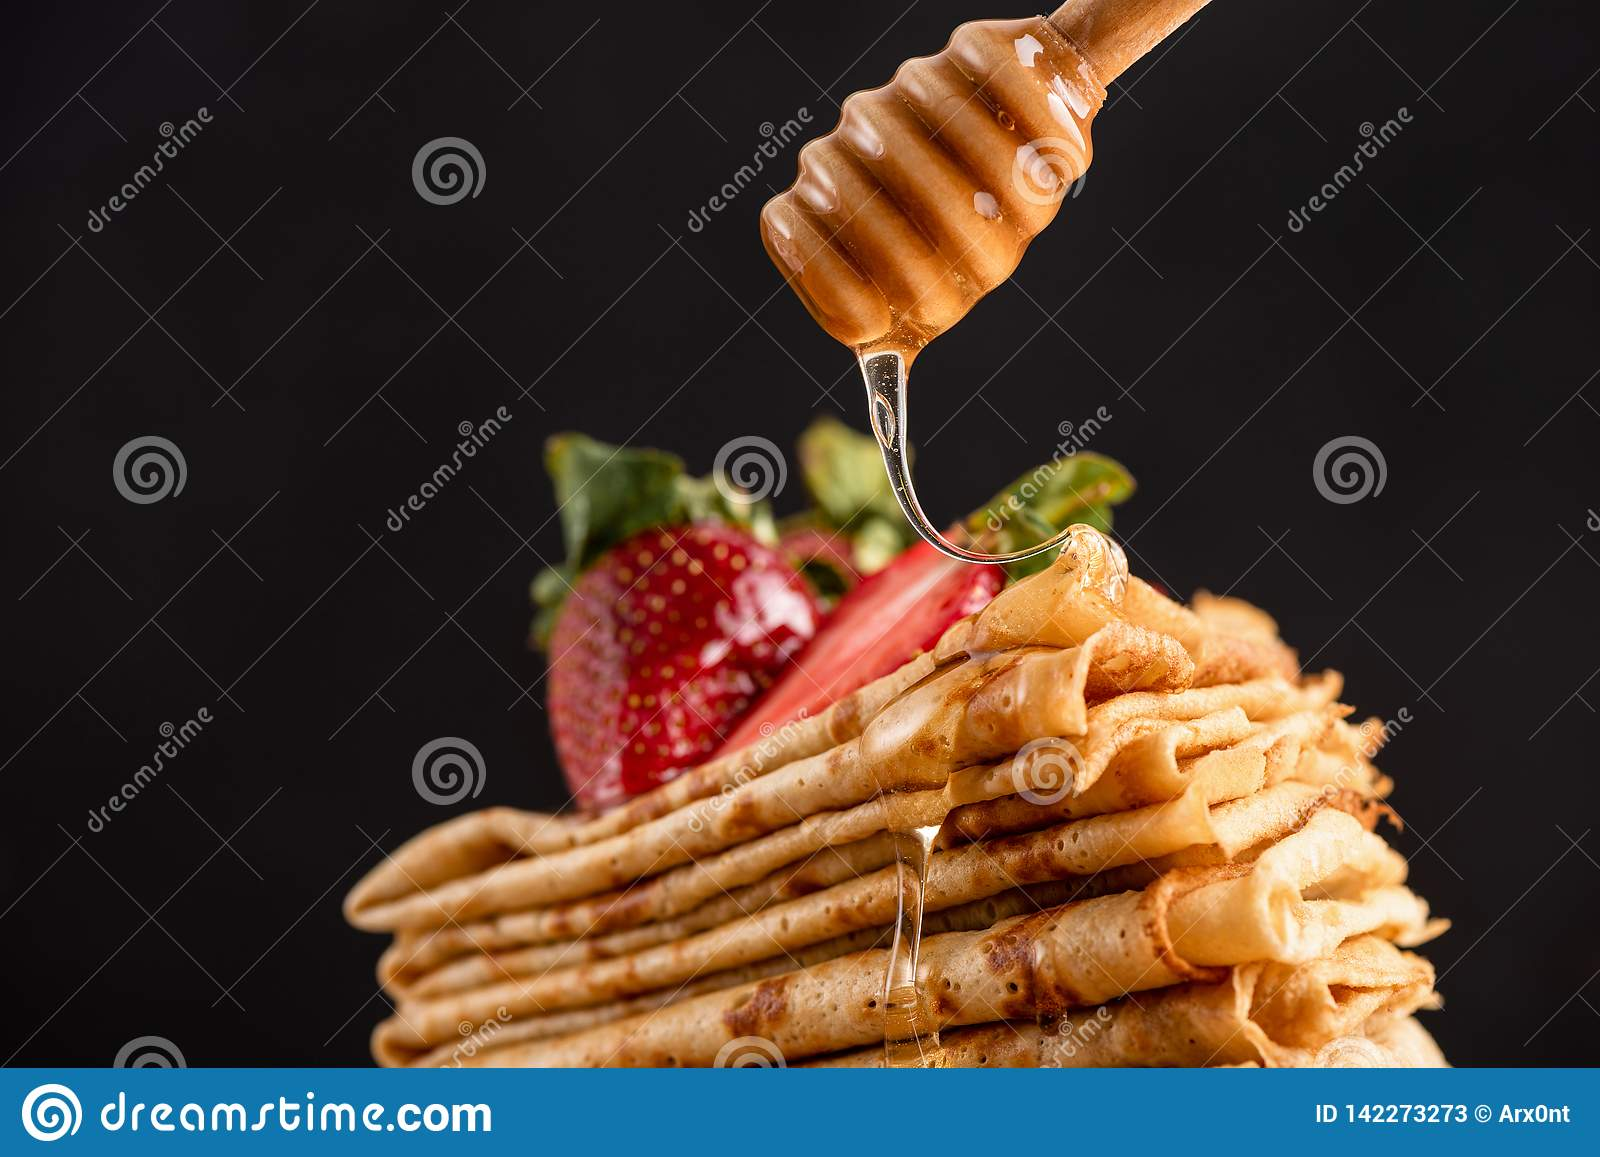 Honey pouring on crepes or blini